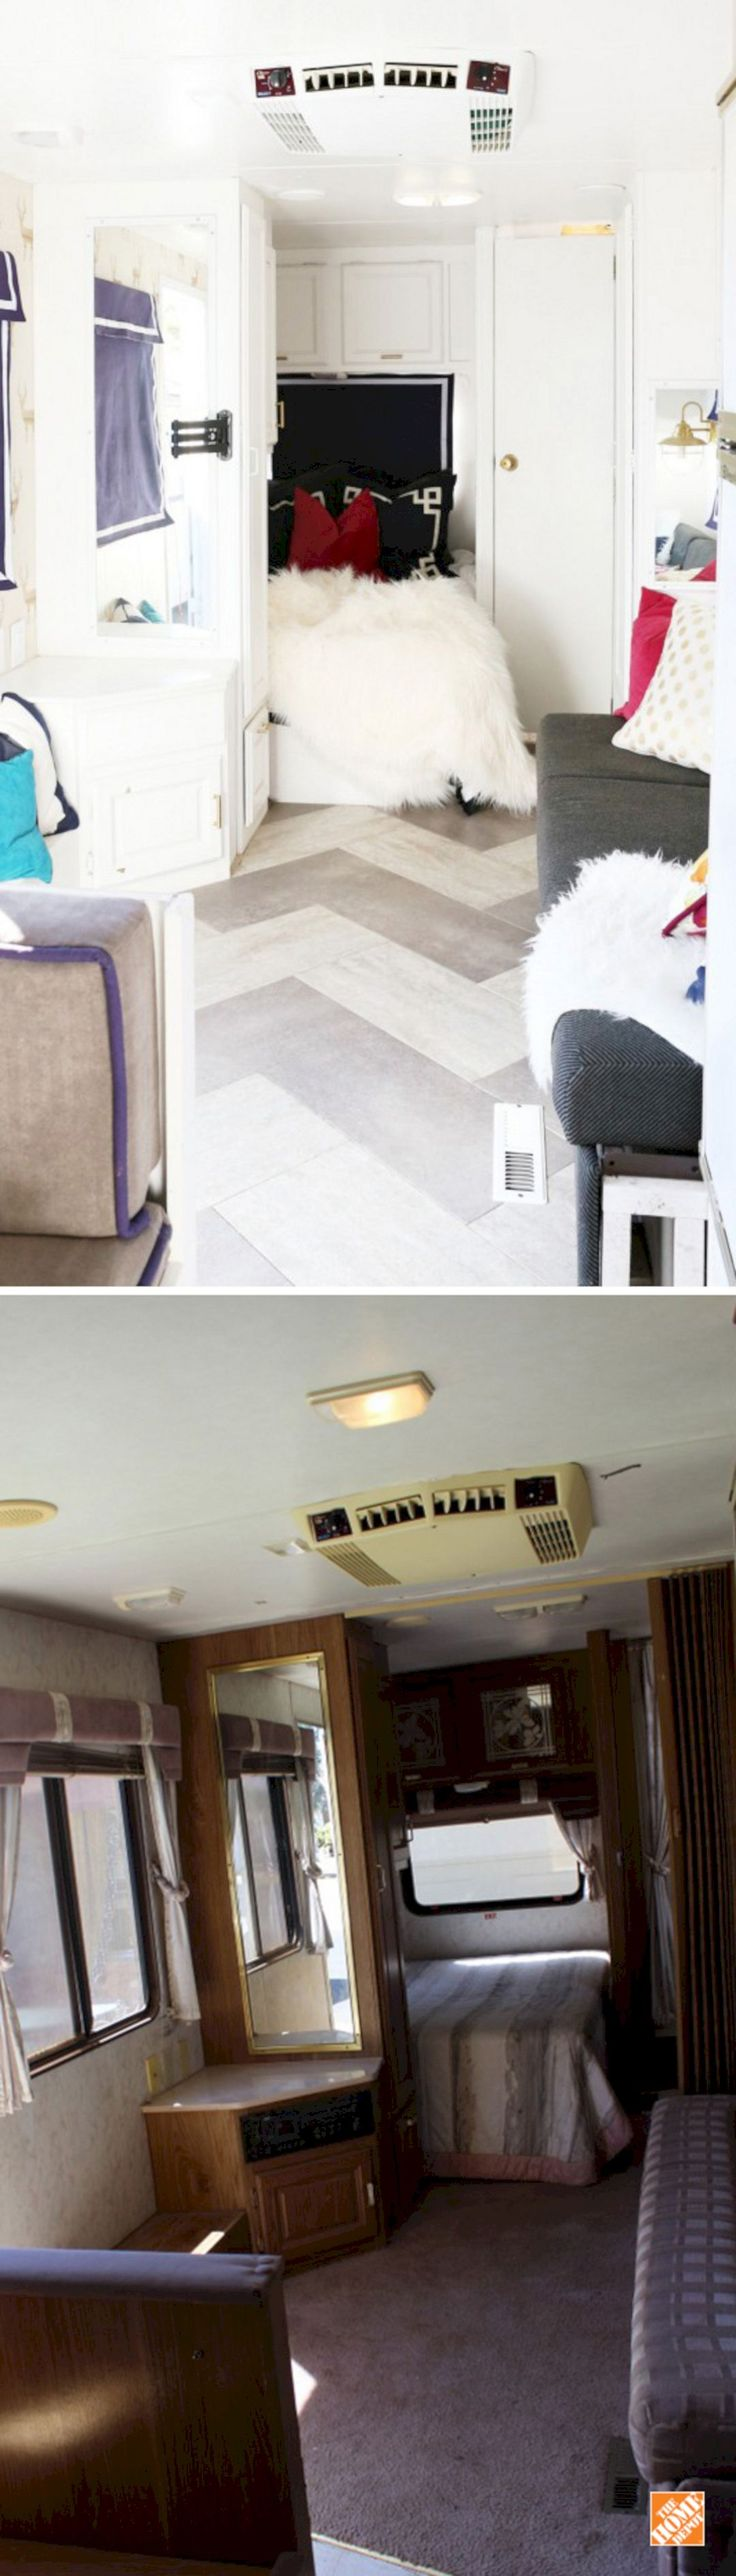 Great Idea Easy RV Remodels On A Budget: 45+ Before And After Pictures http://goodsgn.com/rv-camper/easy-rv-remodels-on-a-budget-45-before-and-after-pictures/